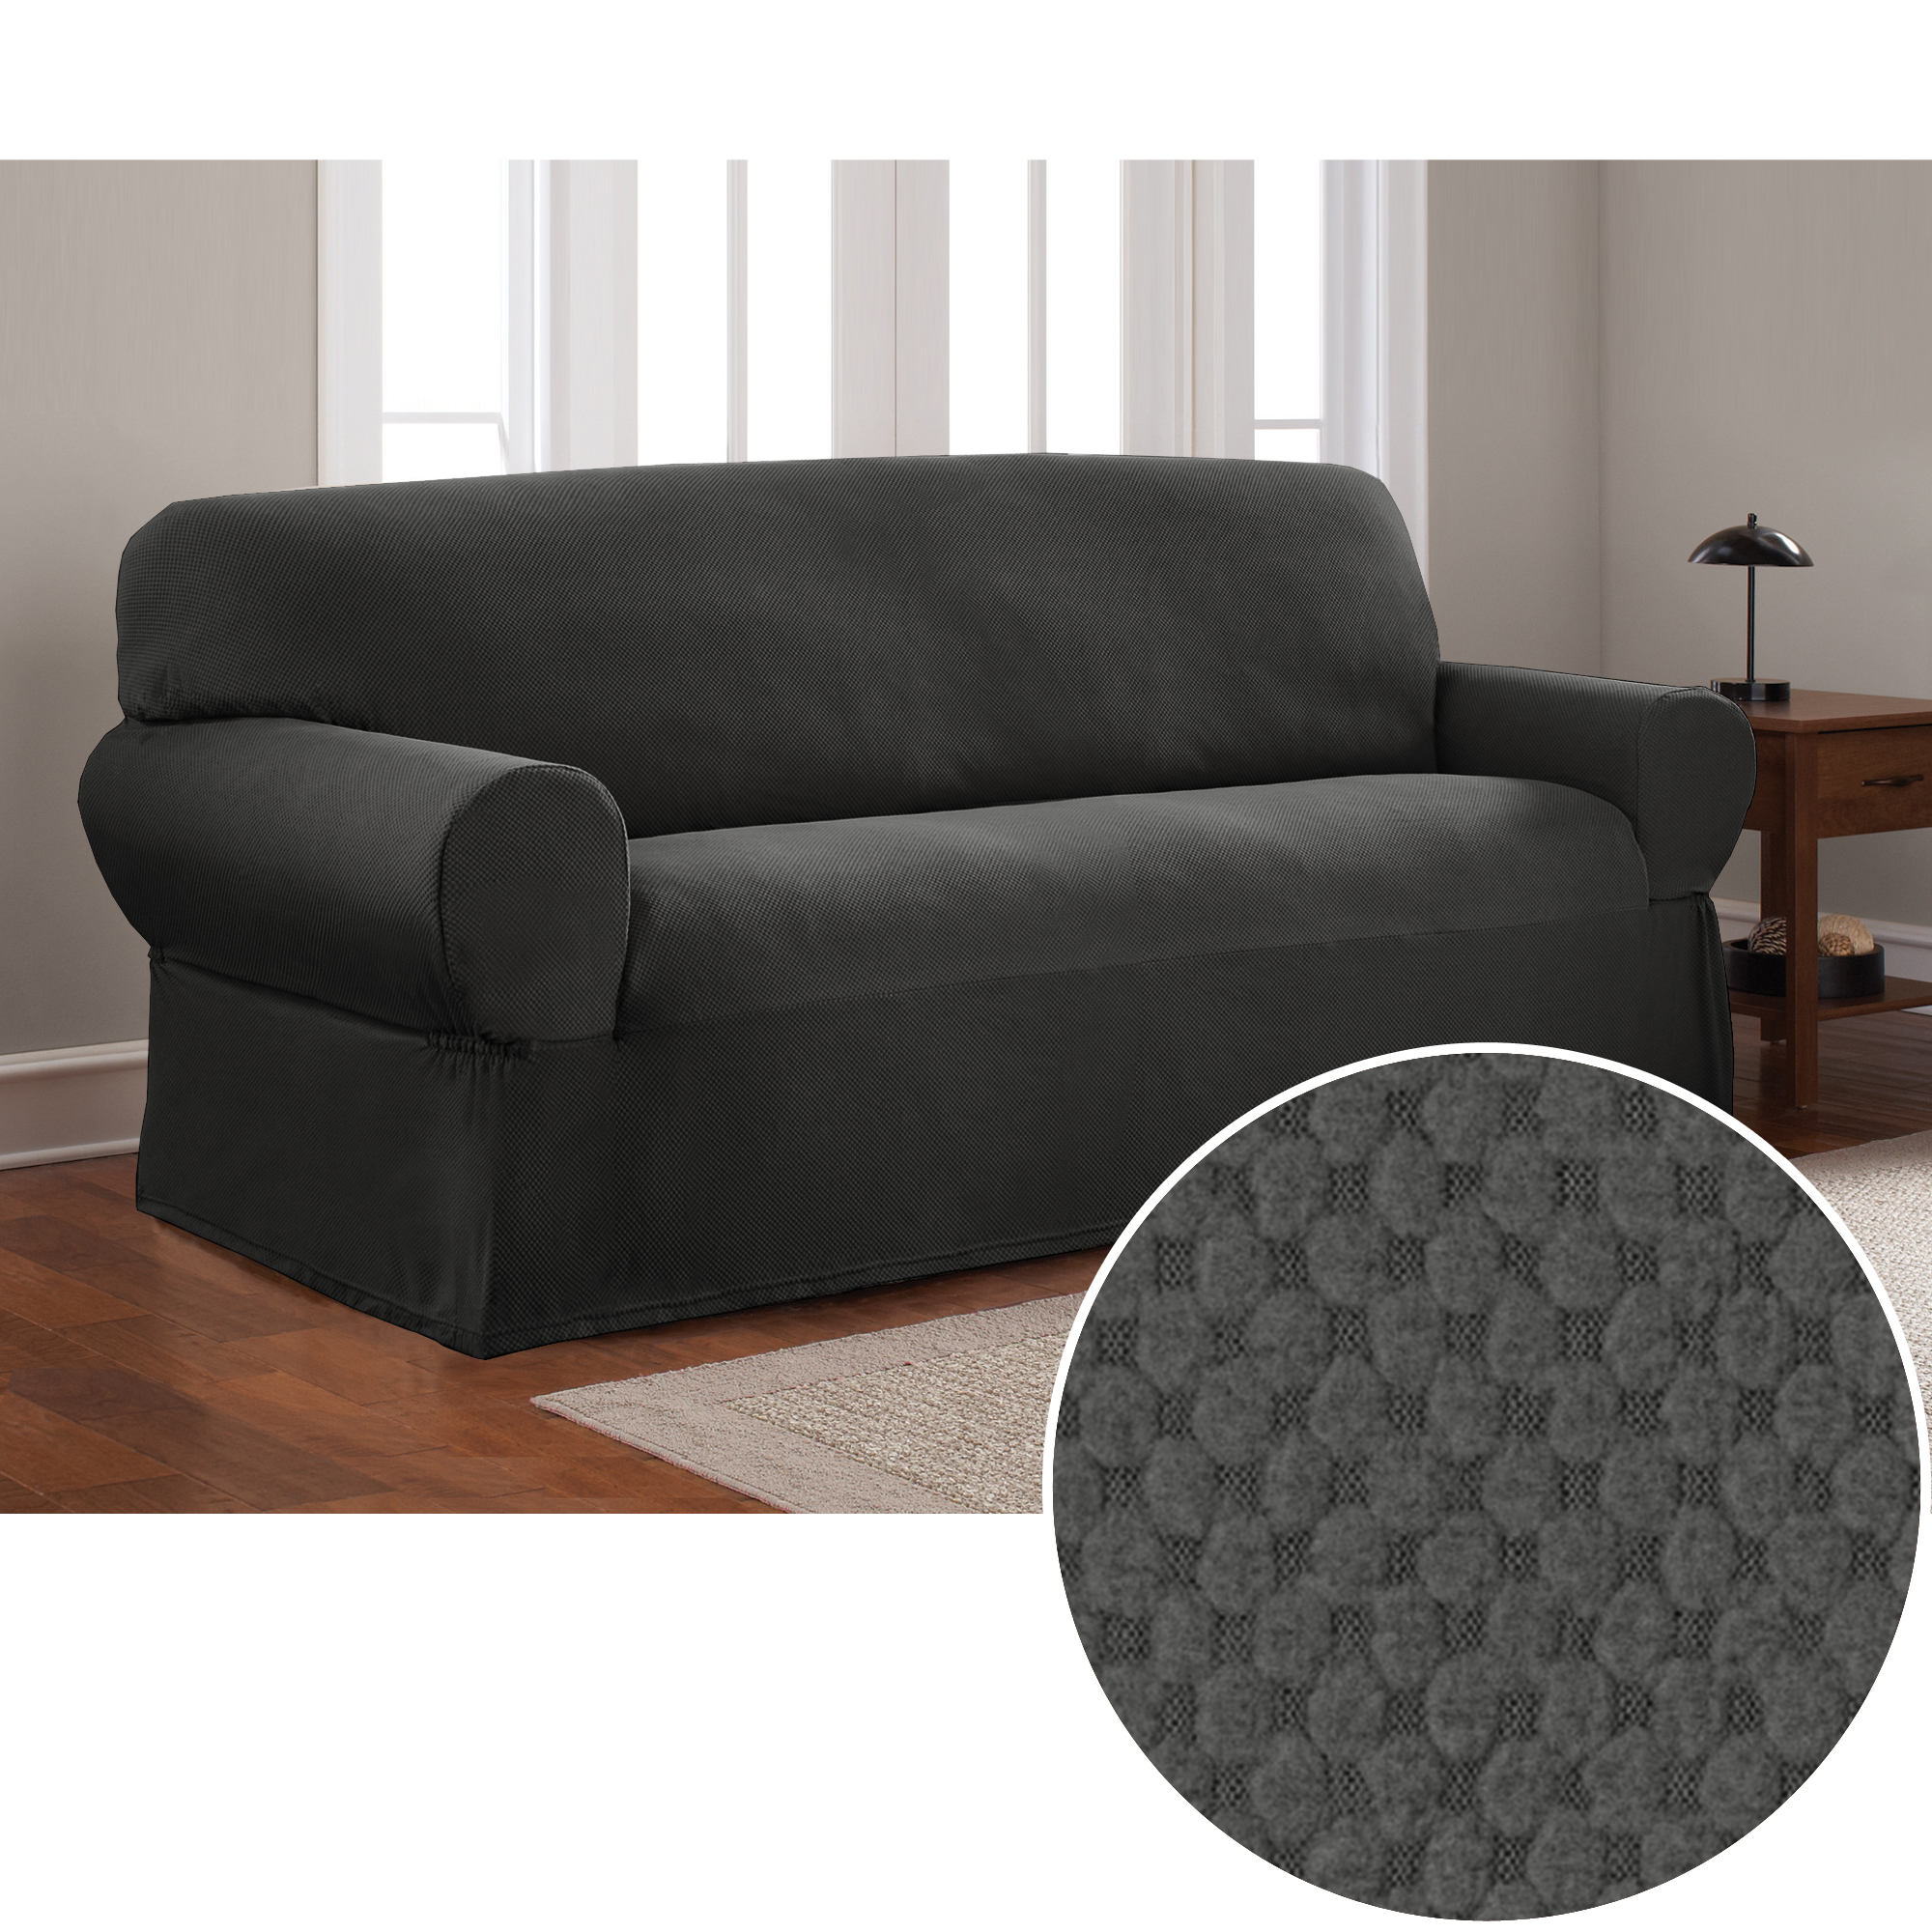 Couch Covers   Walmart.com